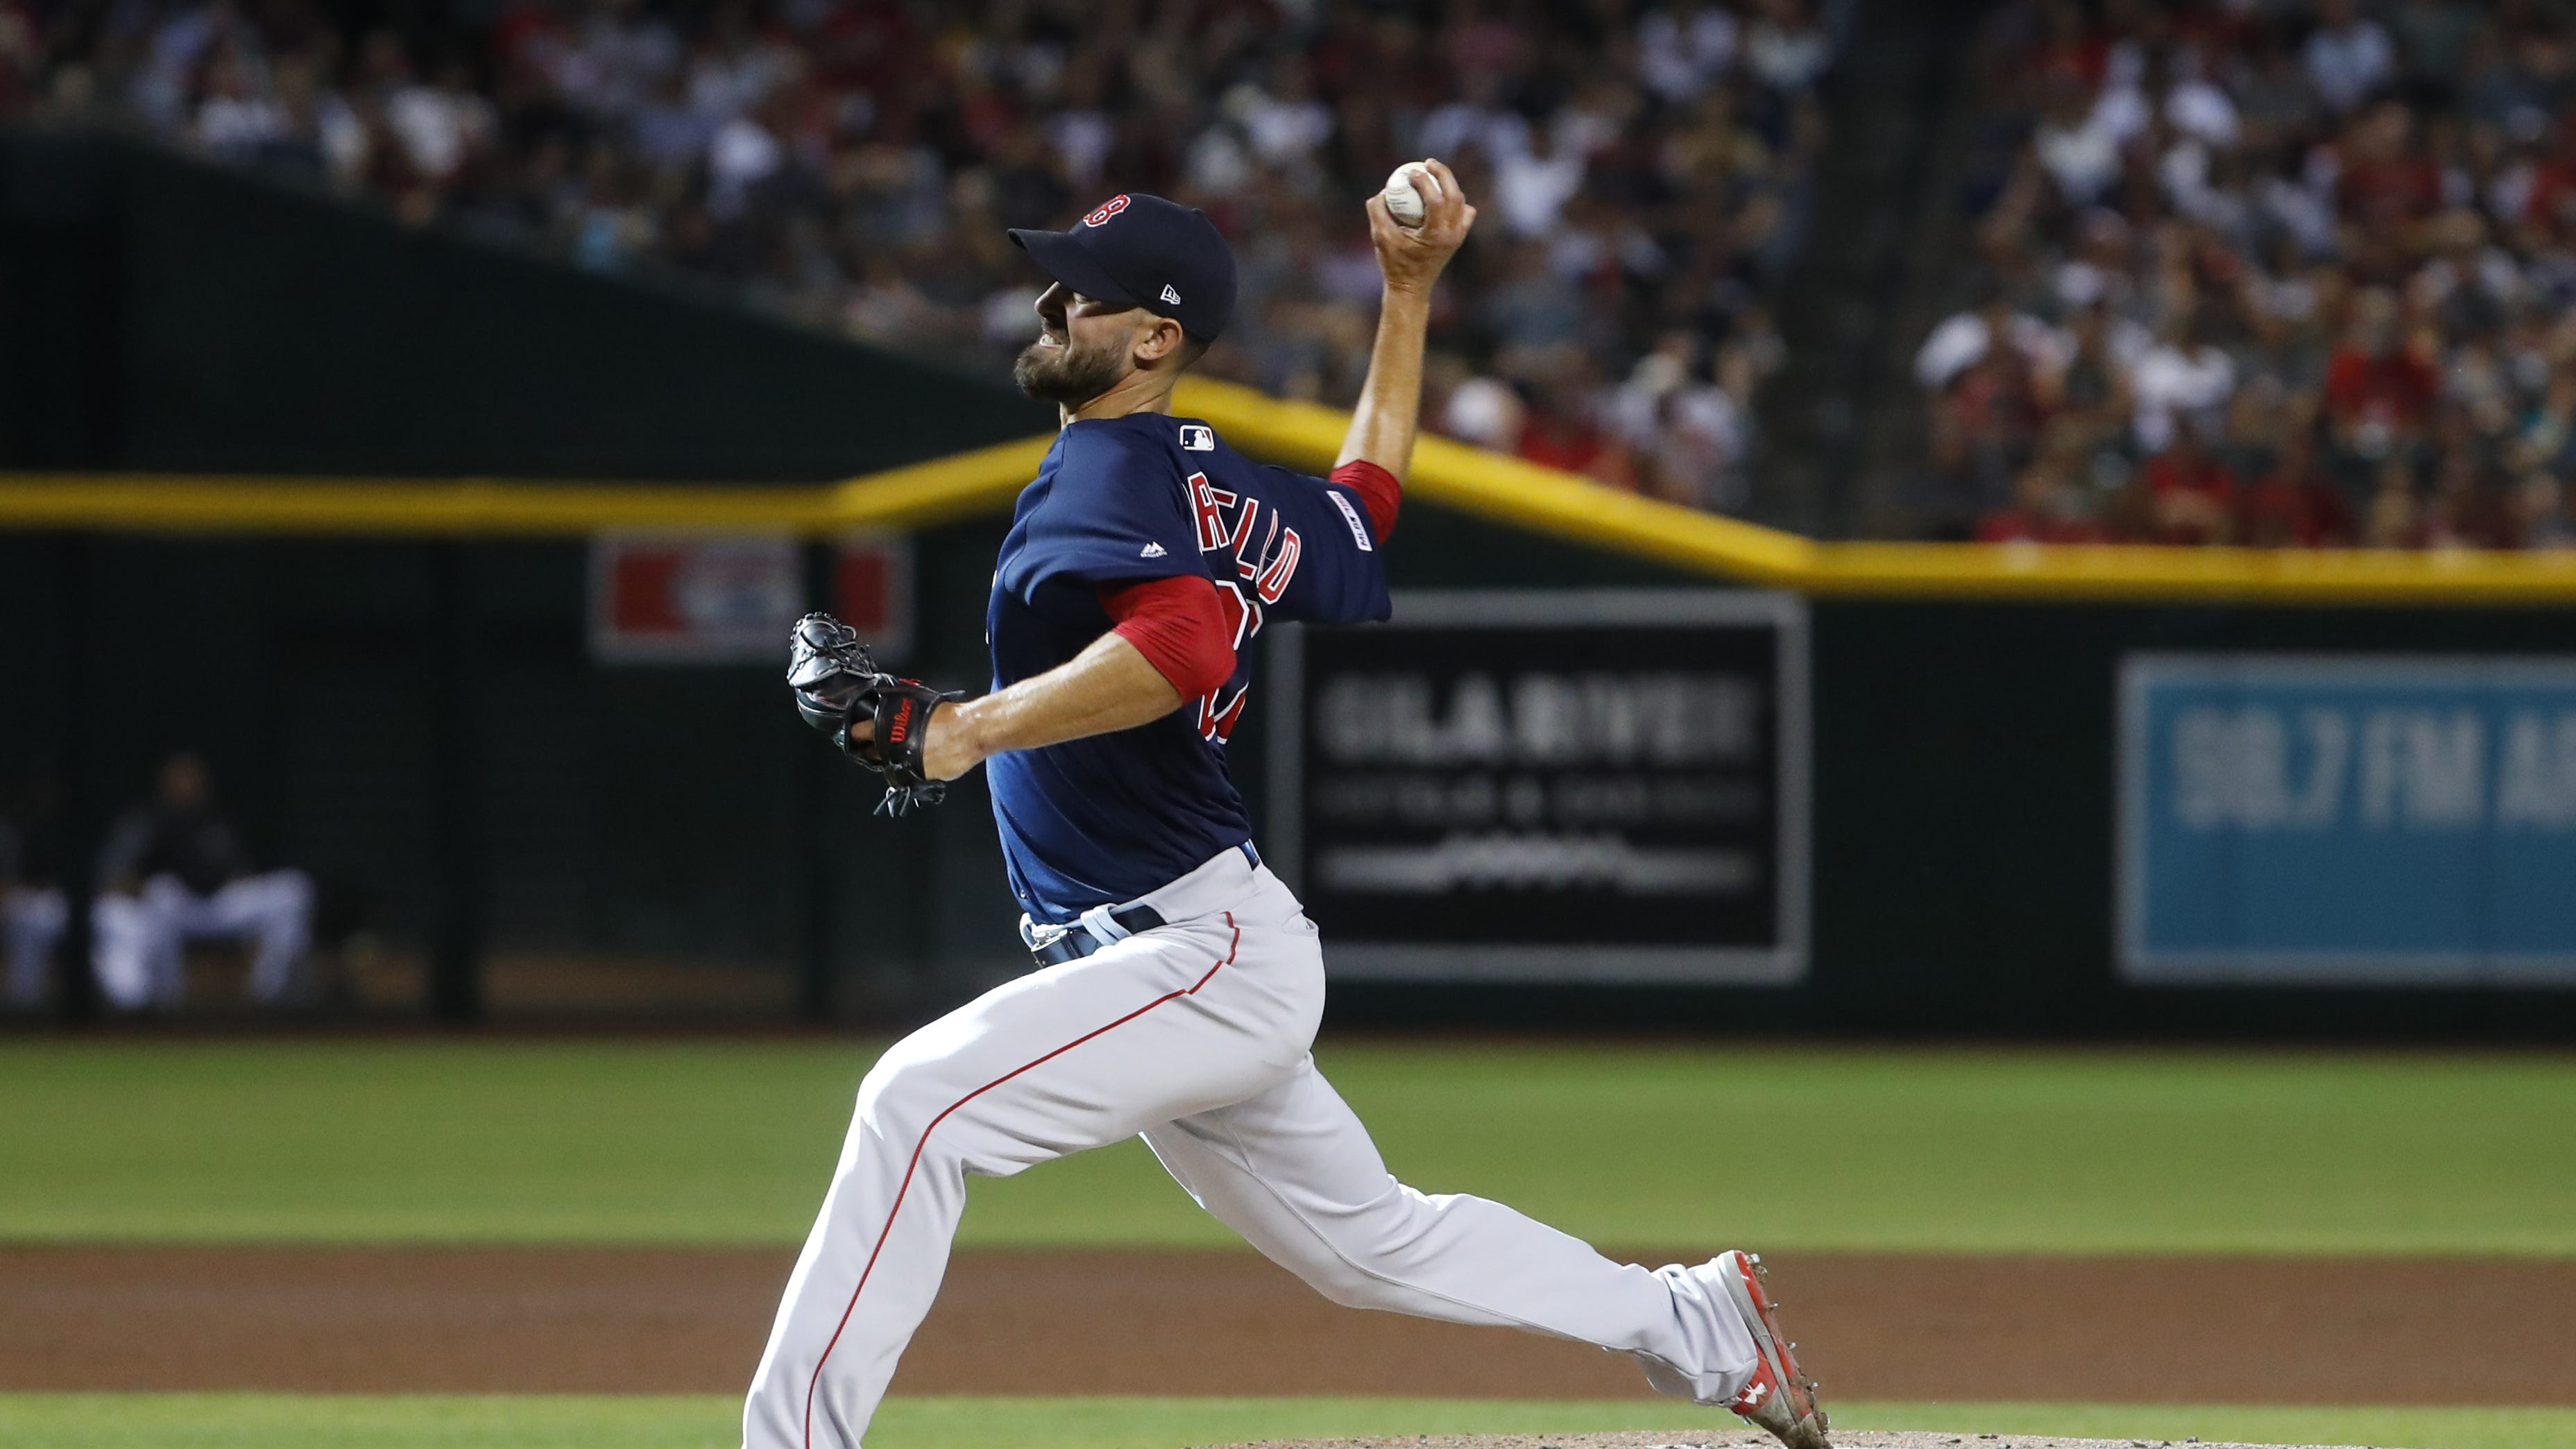 Red Sox pitcher Rick Porcello (22) pitches agains the Diamondbacks during the first inning at Chase Field on the Opening Day for the Diamondbacks in Phoenix, Ariz. on April 5, 2019.